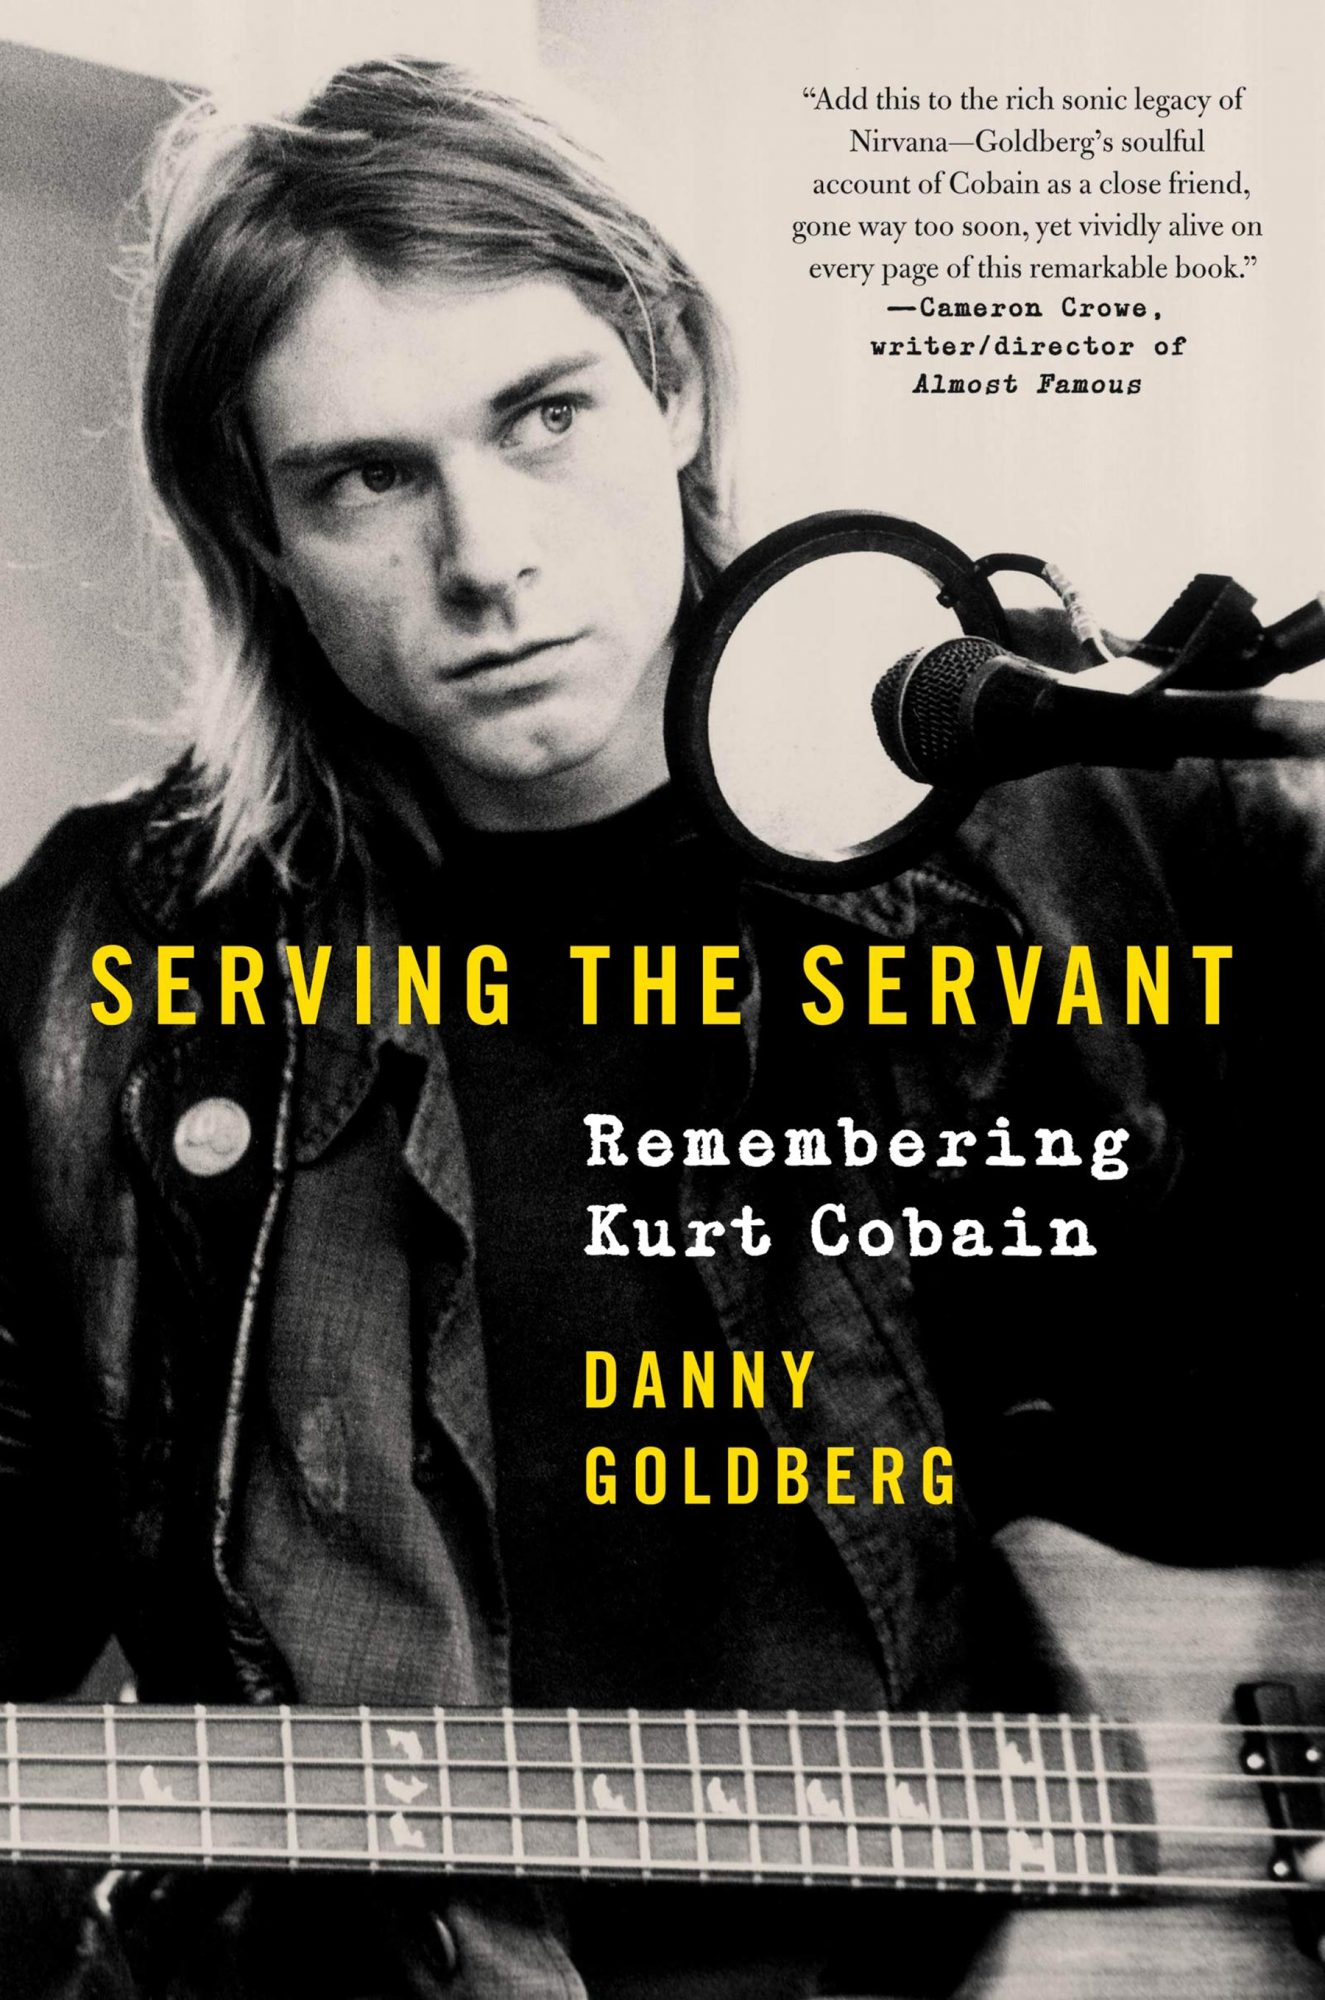 Serving the Servant by Danny GoldbergPublisher: Ecco